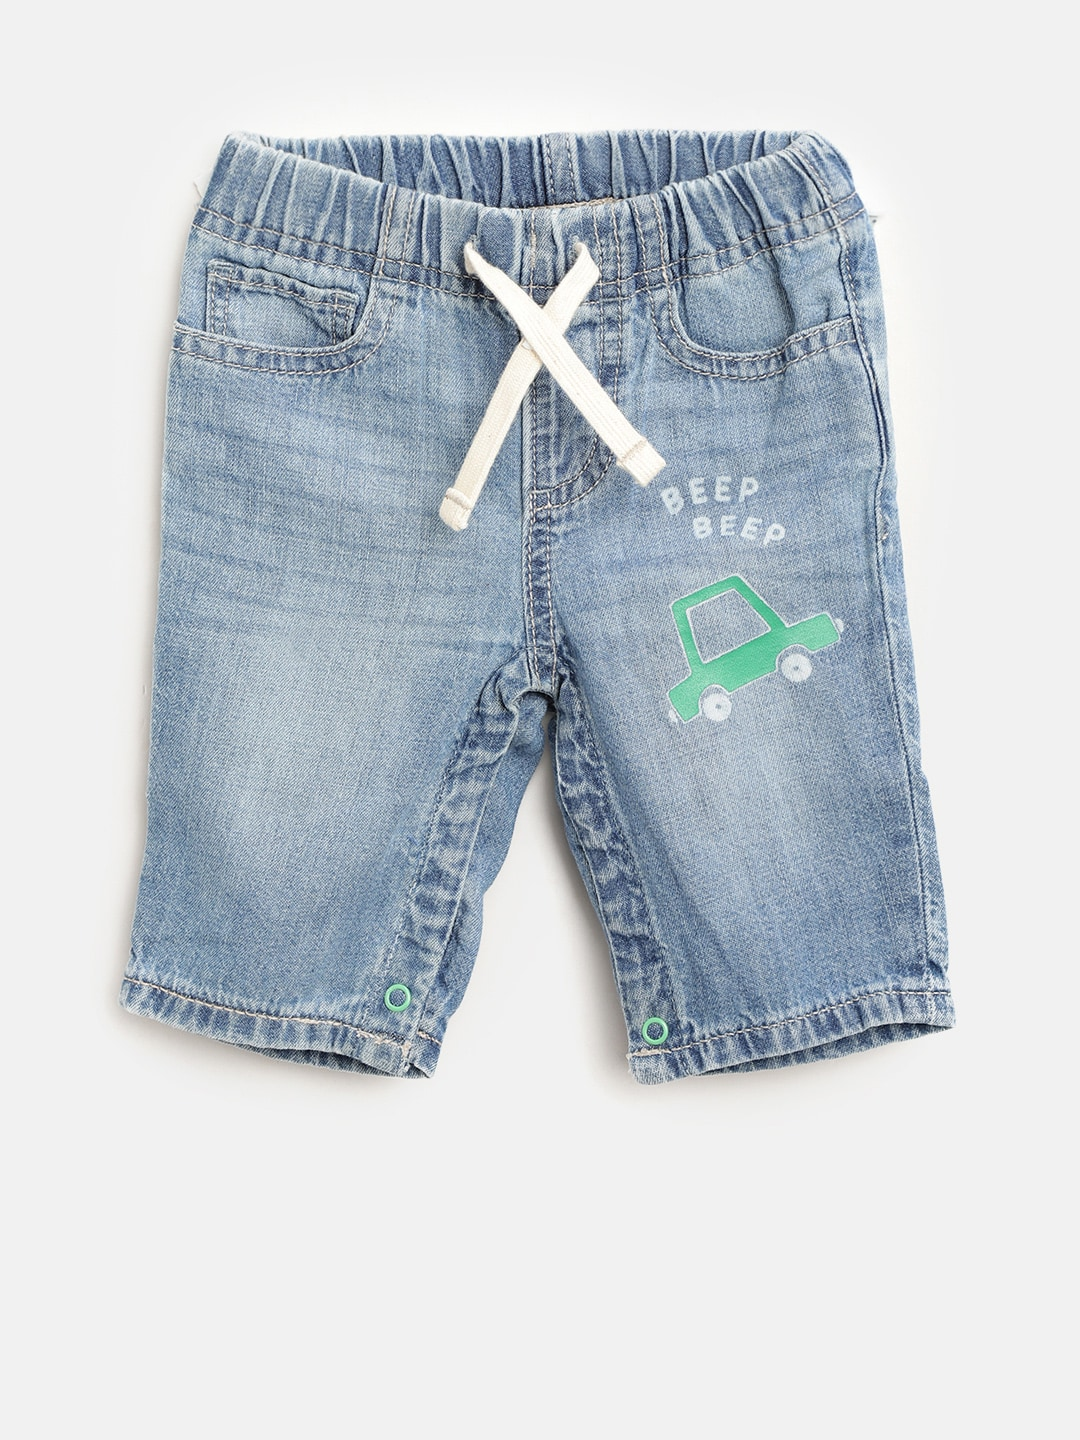 03b85e7f Kids Tent Jeans - Buy Kids Tent Jeans online in India